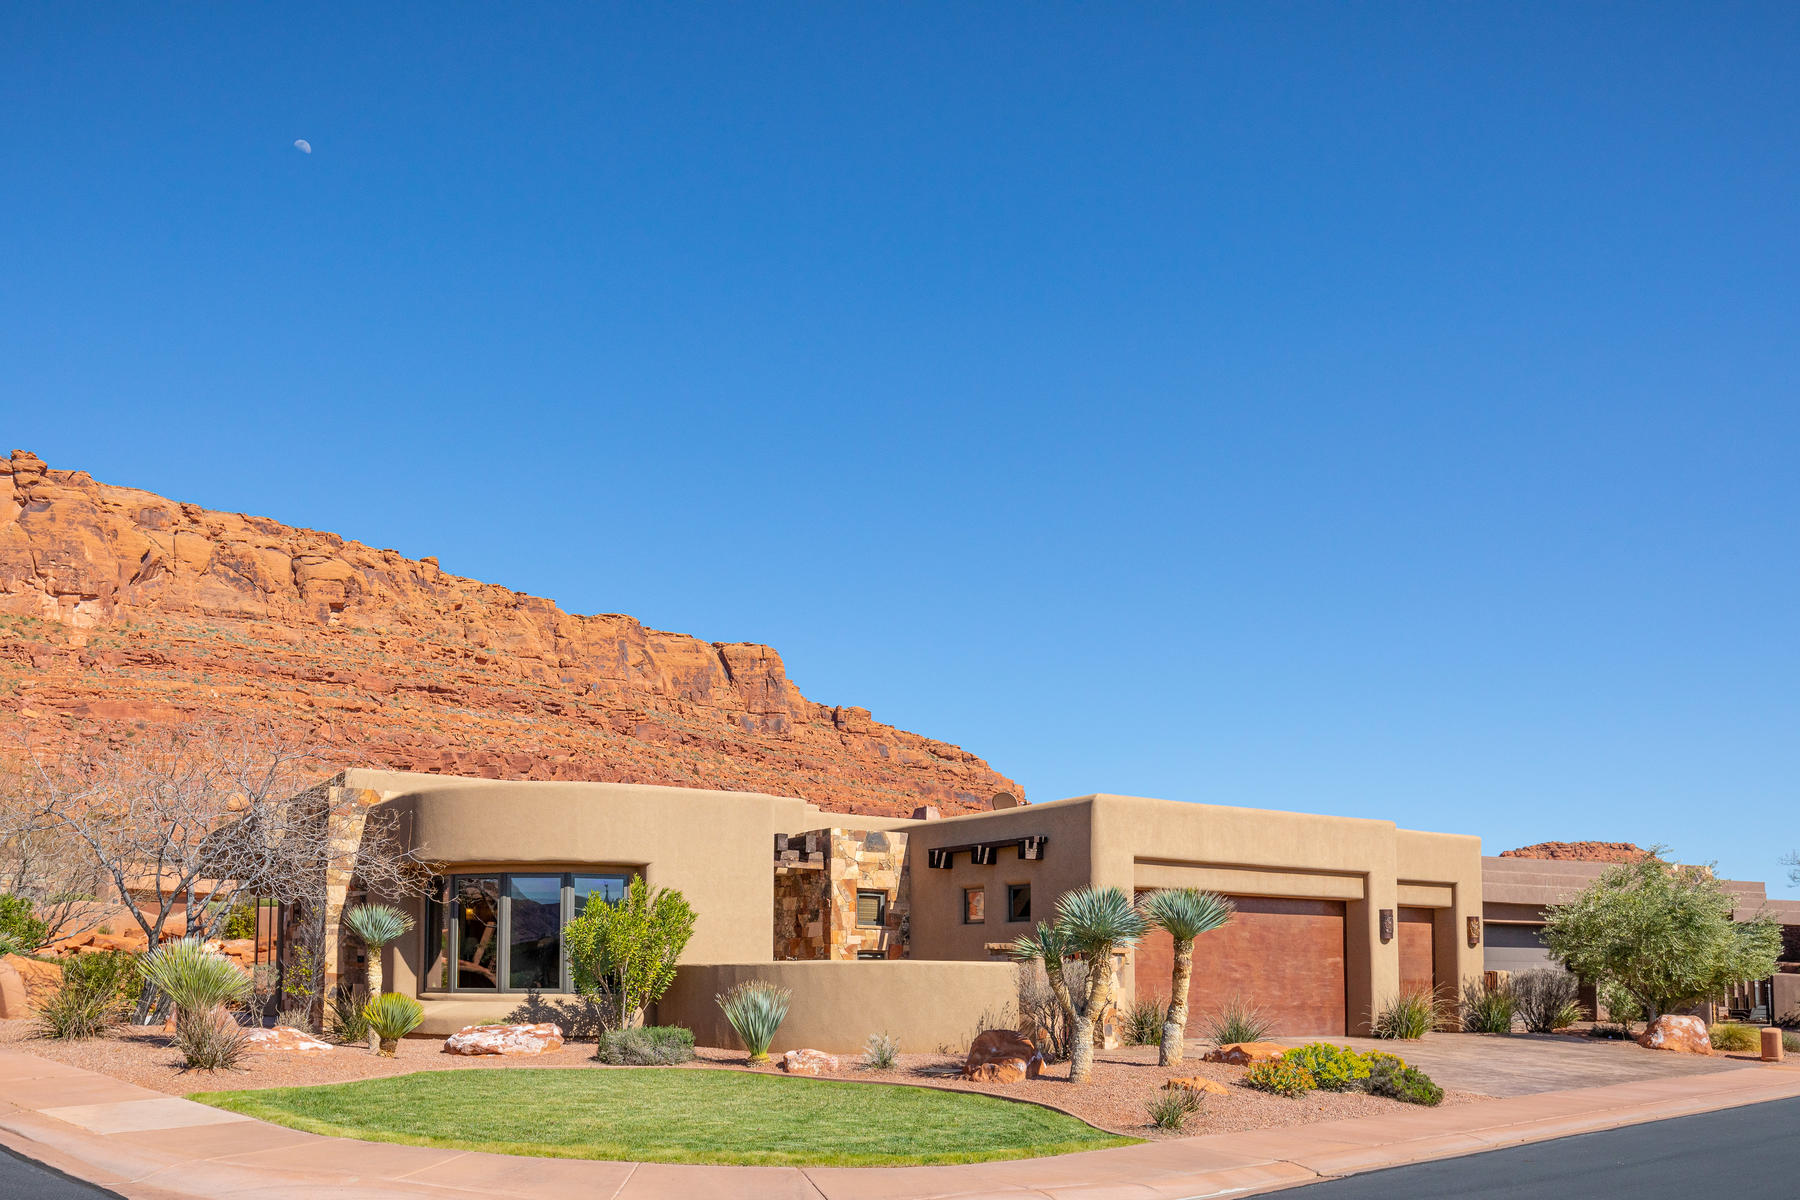 Single Family Homes for Sale at Serenity At Entrada 2336 W Entrada Trail #24 St. George, Utah 84770 United States